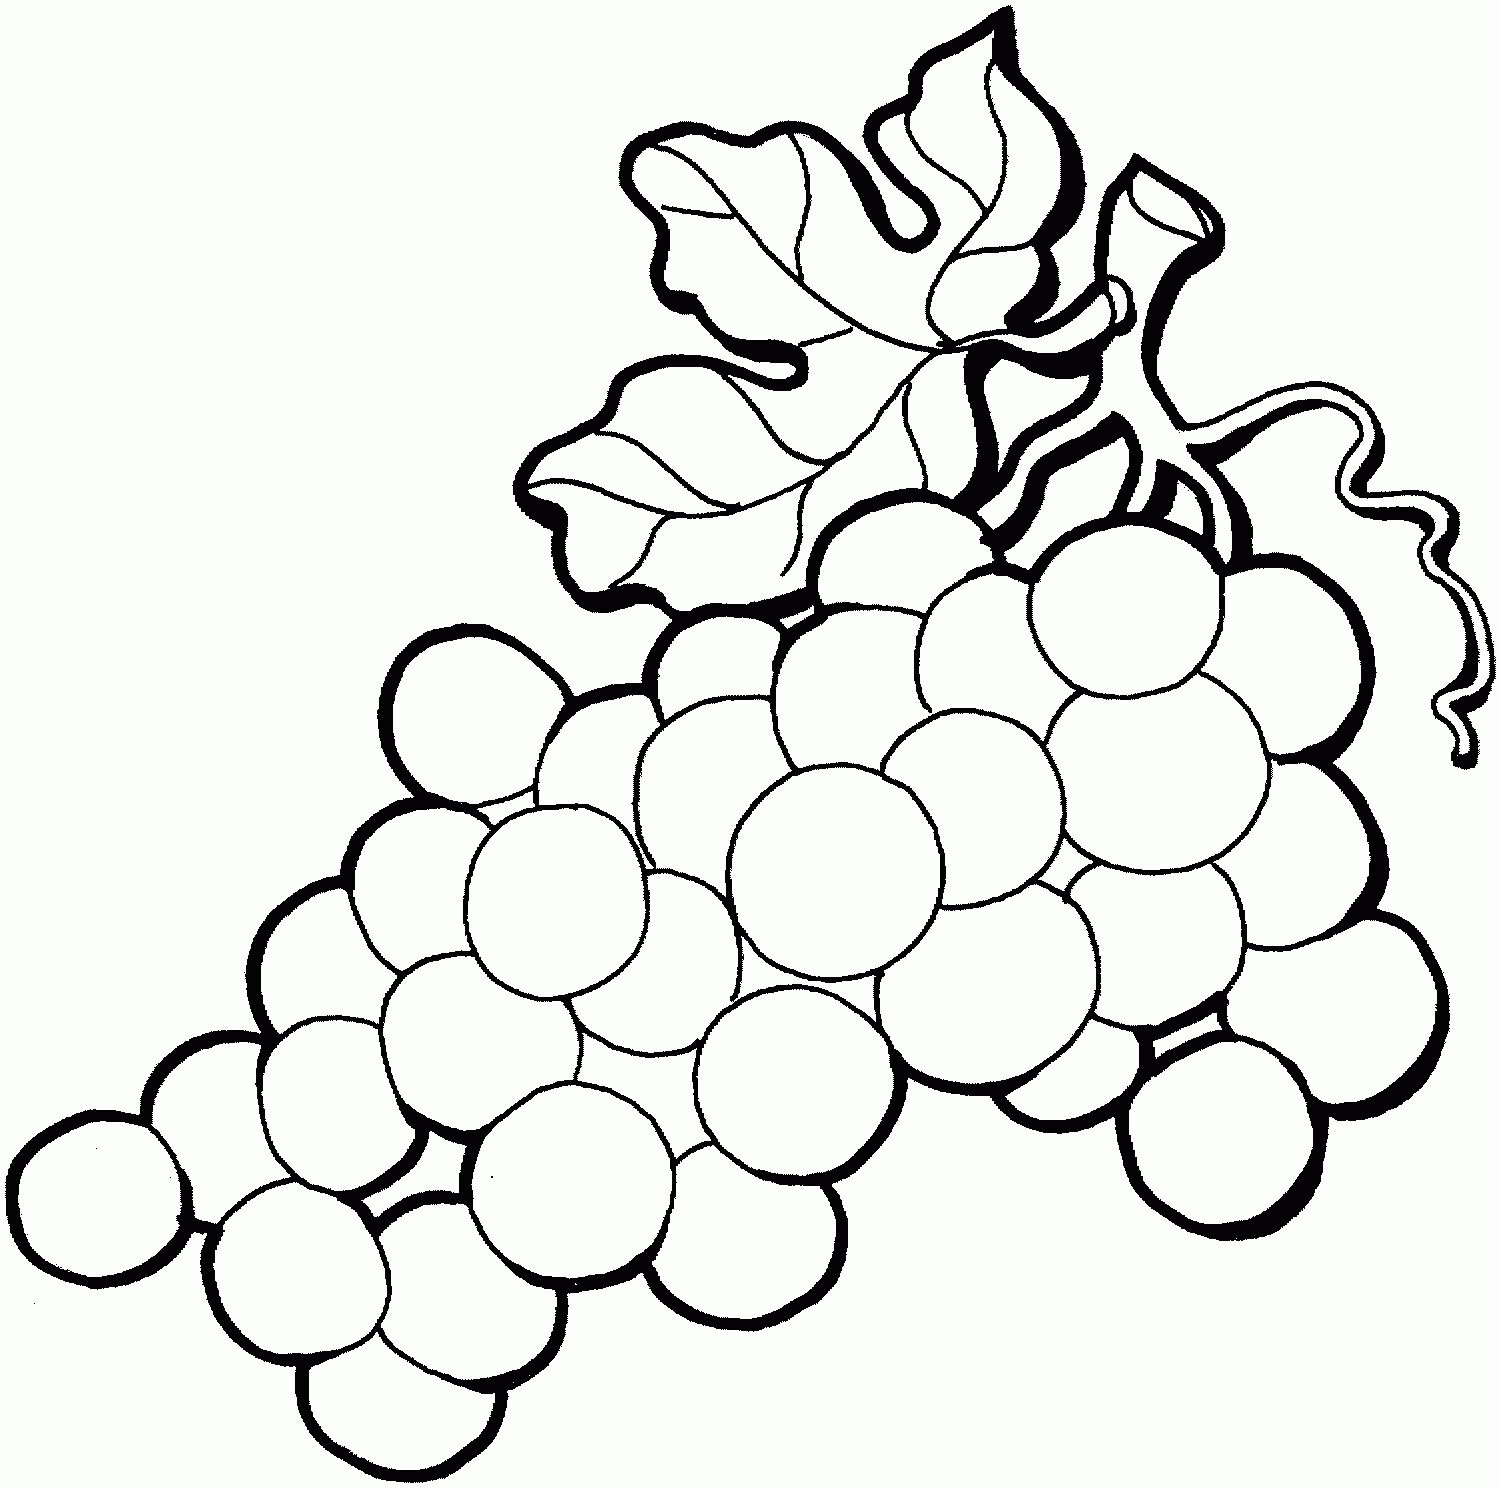 White grapes clipart black and white download Grape Clipart Black And White – Pencil And In Color Grape ... black and white download